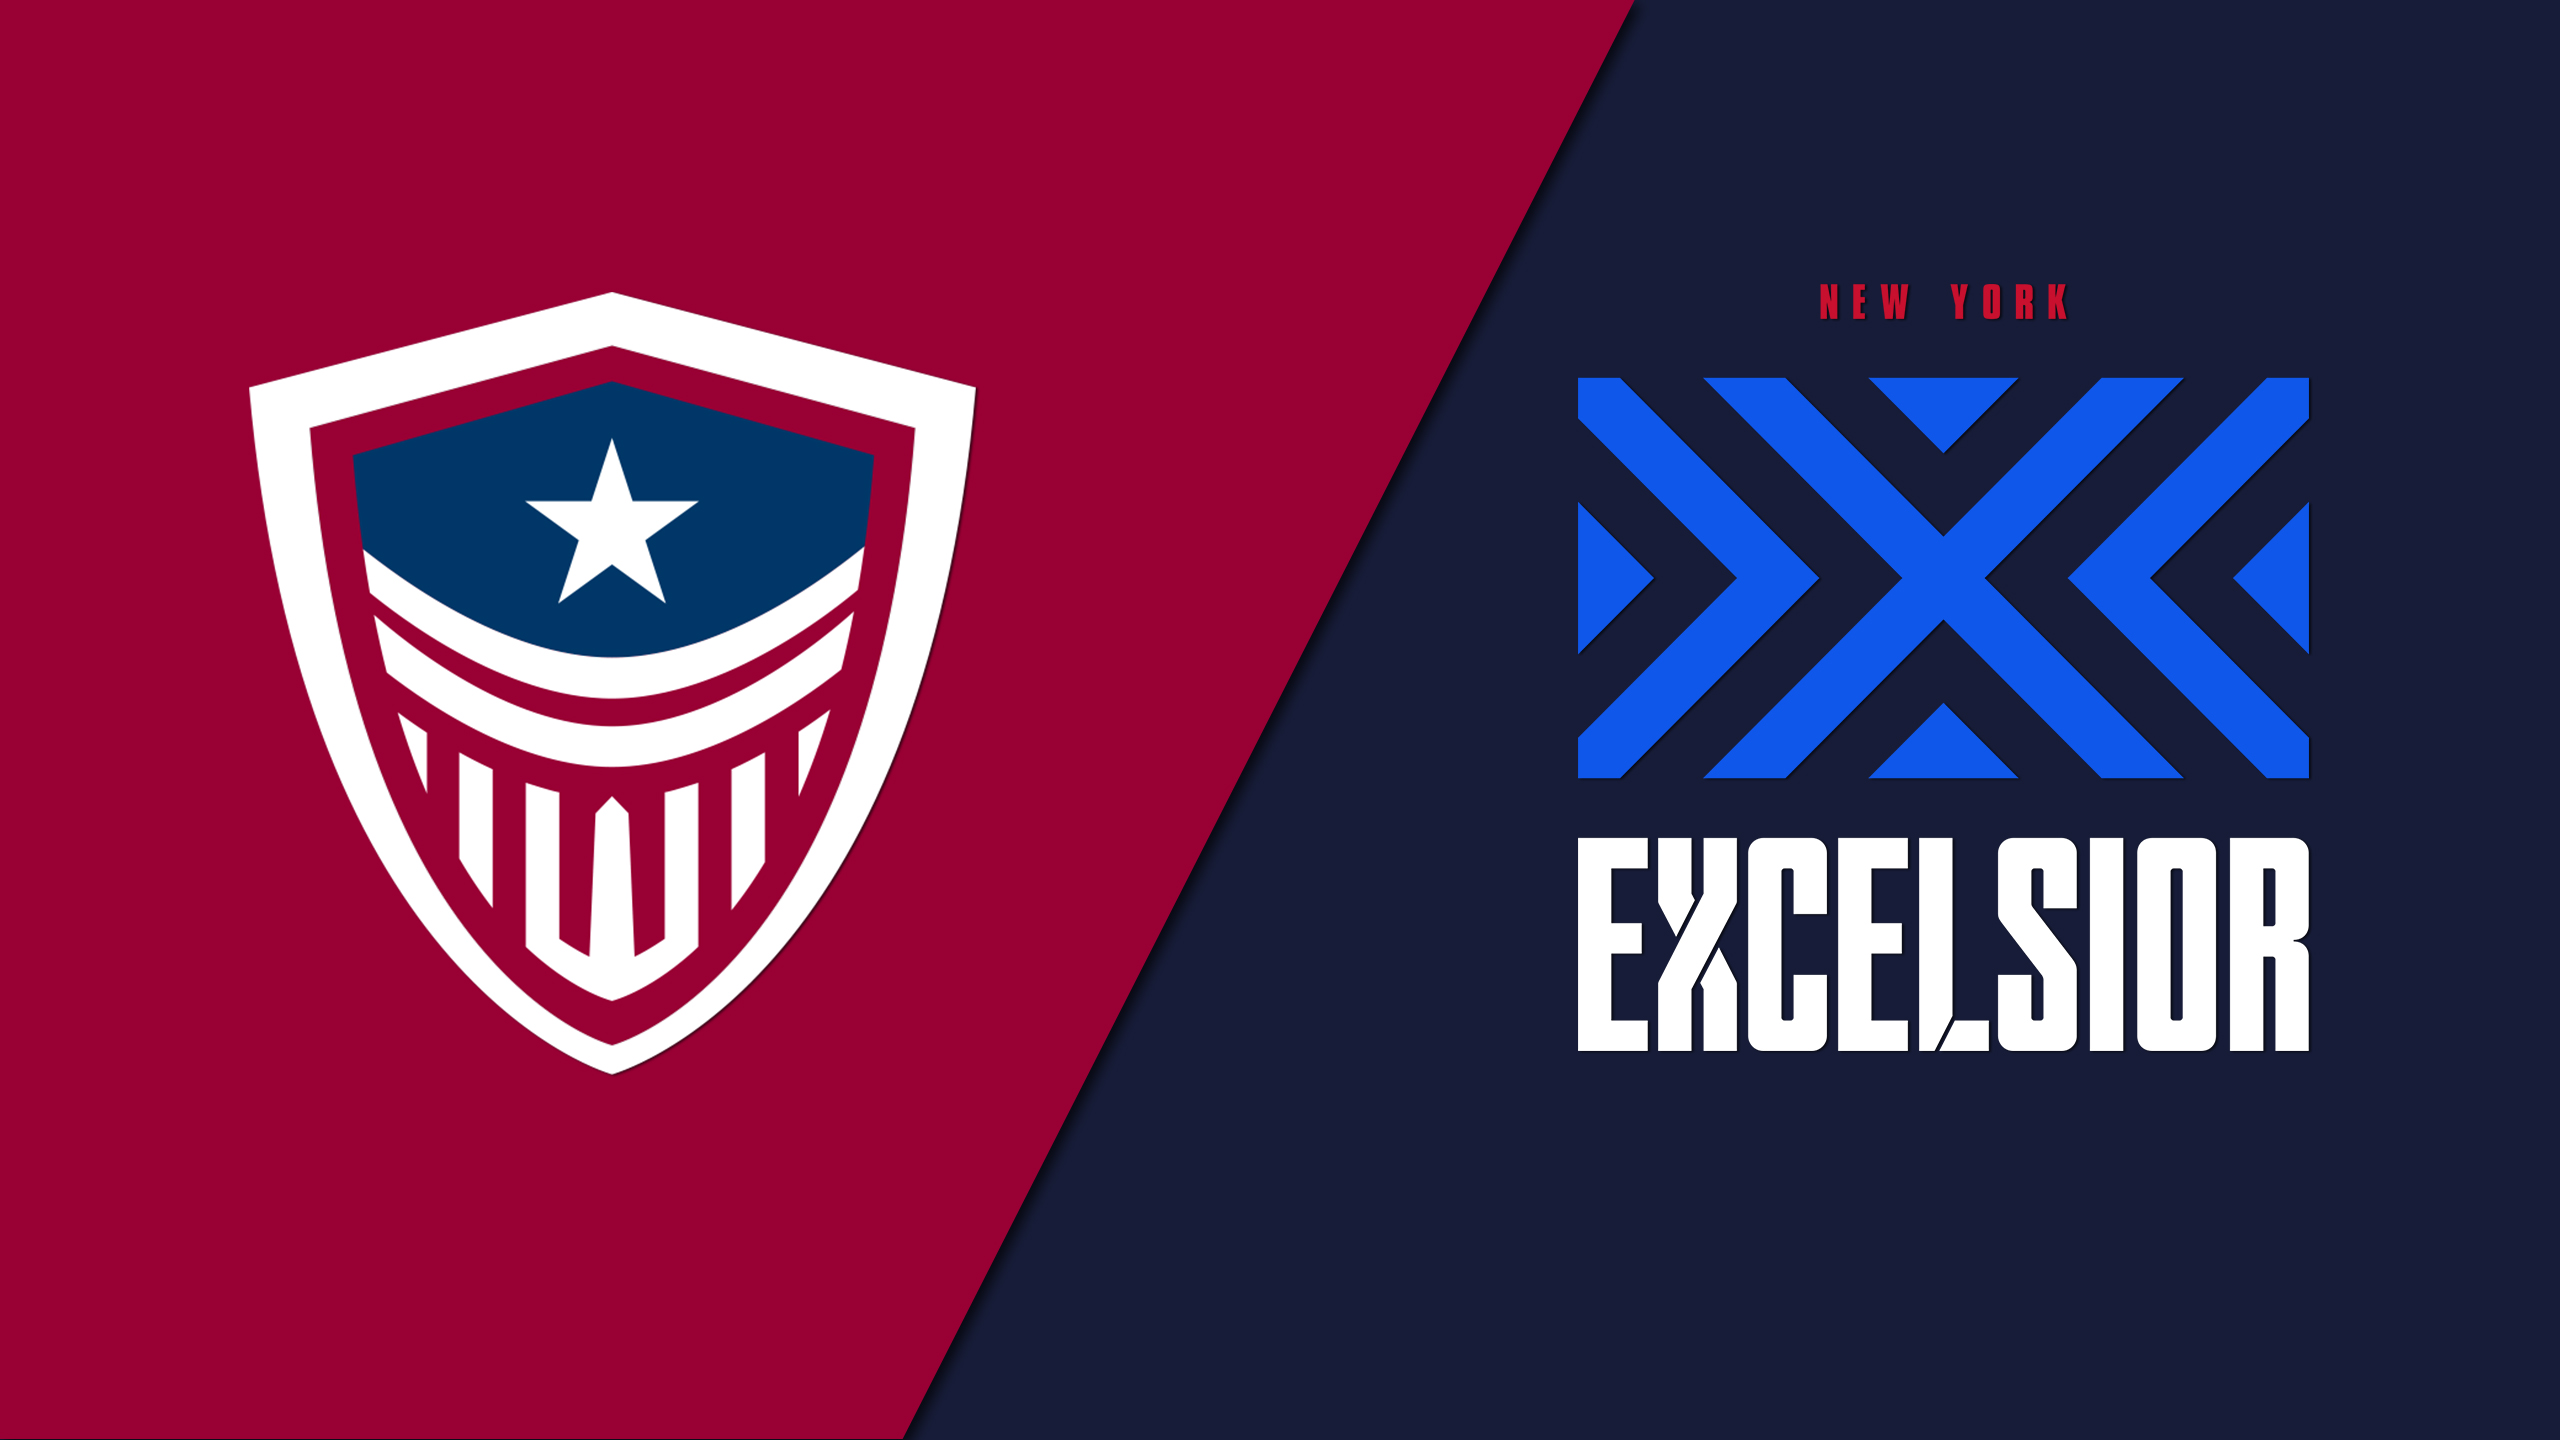 Washington Justice vs. New York Excelsior